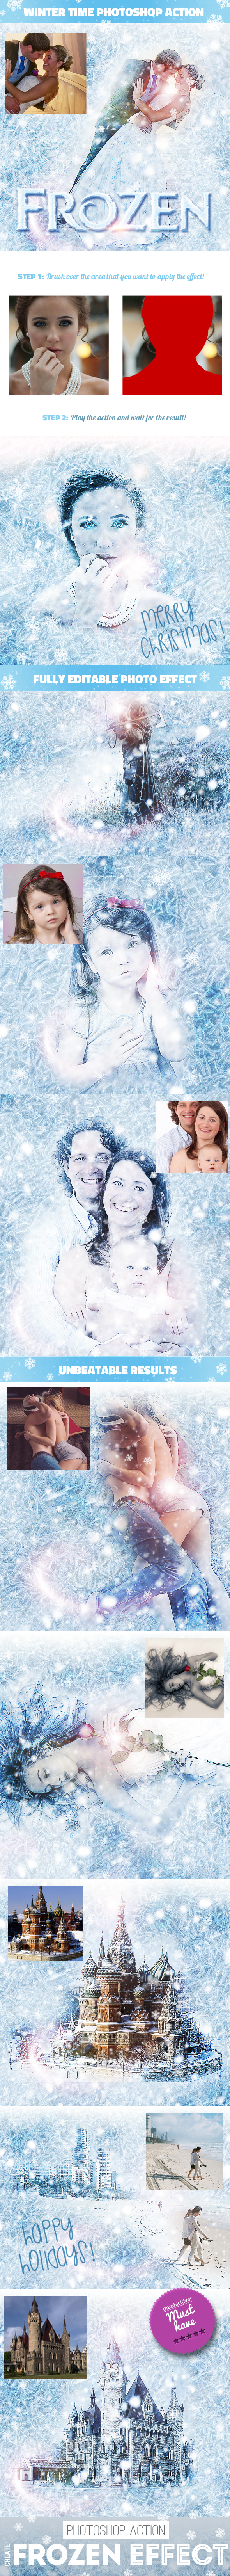 Frozen - Winter Photo Effect Photoshop Action - Photo Effects Actions